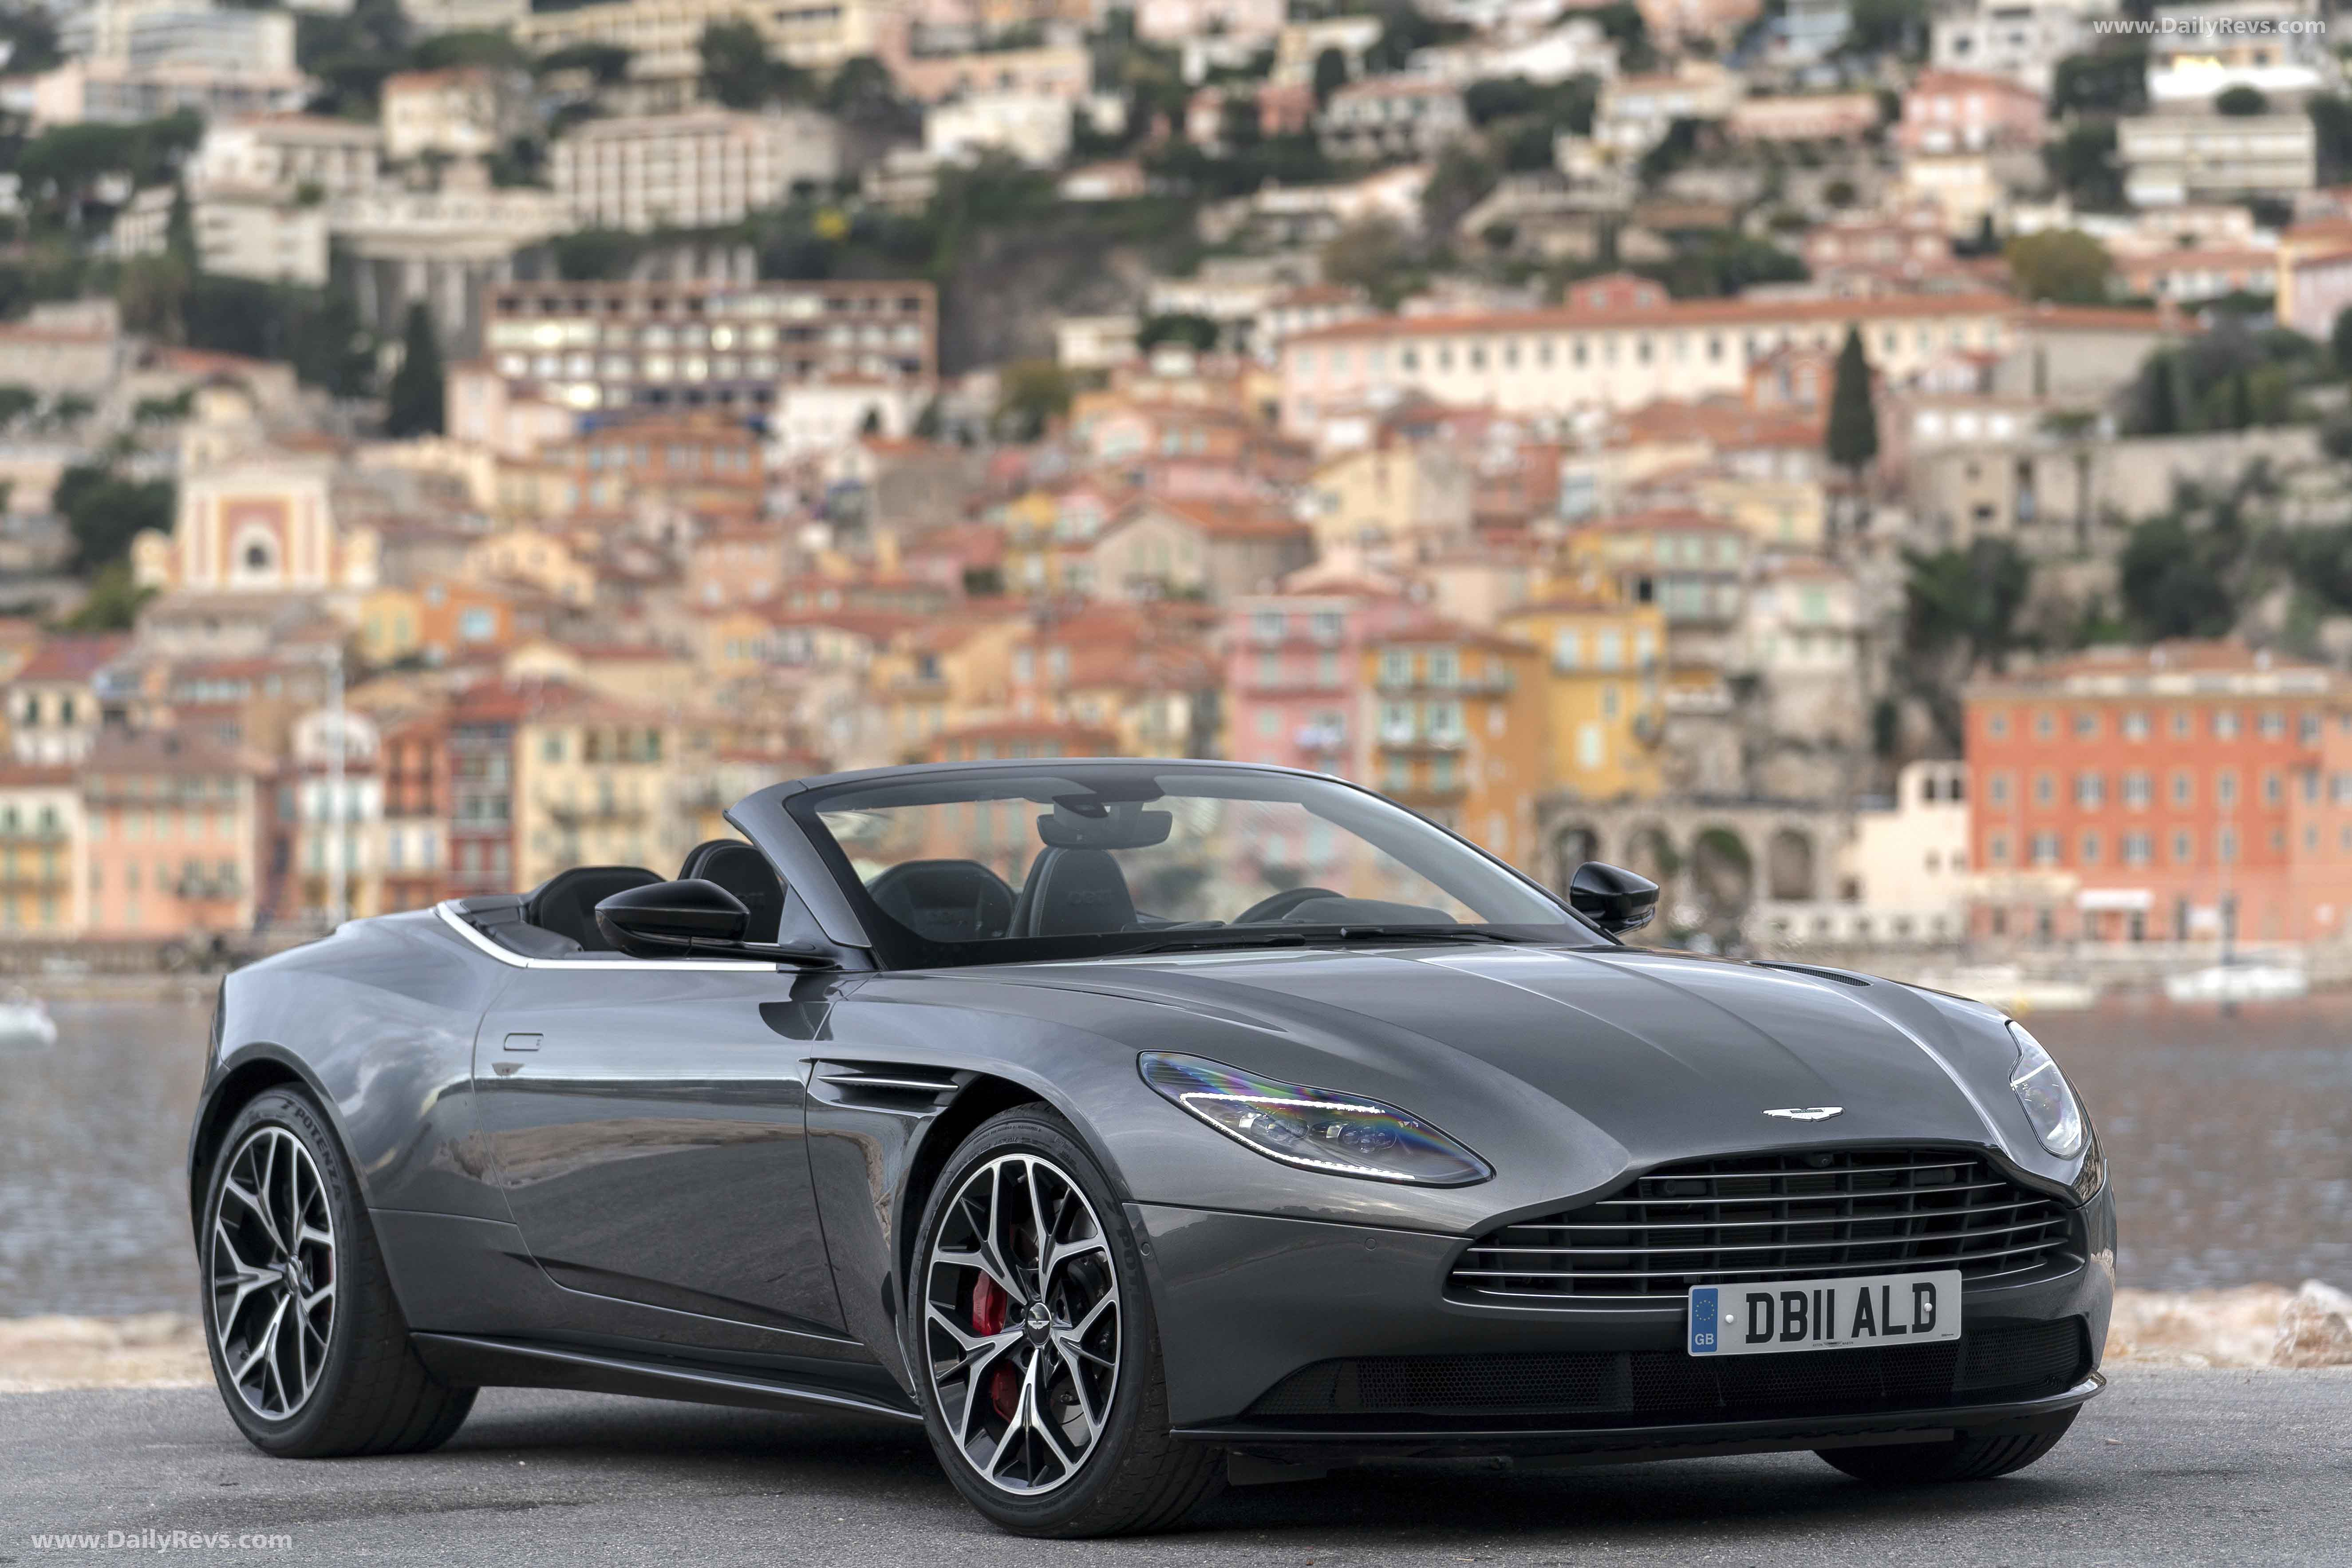 2019 Aston Martin Db11 Volante Magnetic Silver Hd Pictures Videos Specs Information Dailyrevs